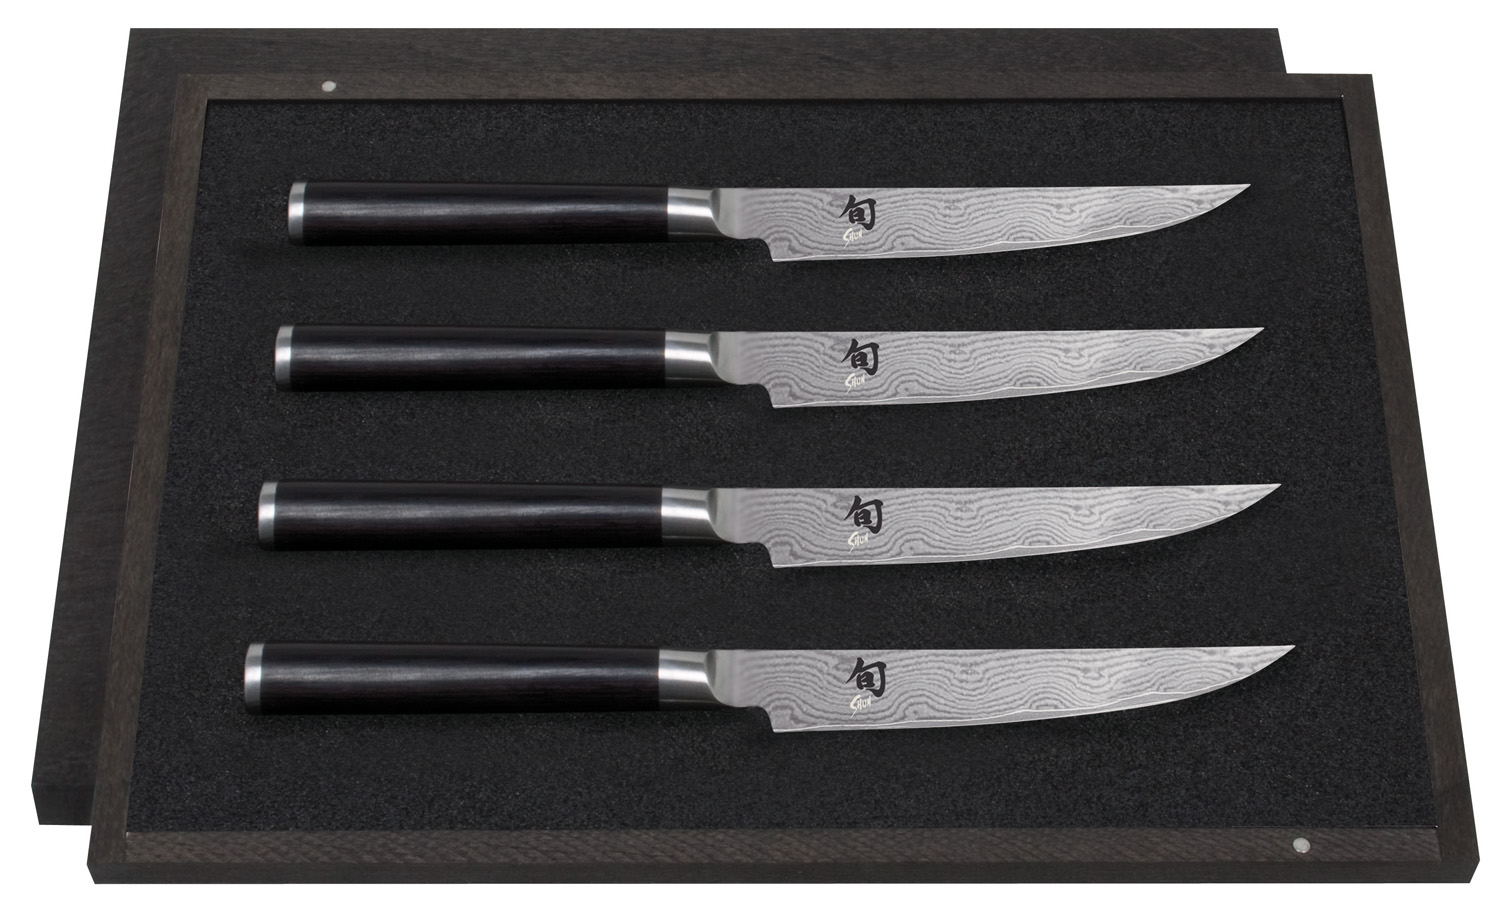 kai shun steakmesser set dms 400 chef. Black Bedroom Furniture Sets. Home Design Ideas